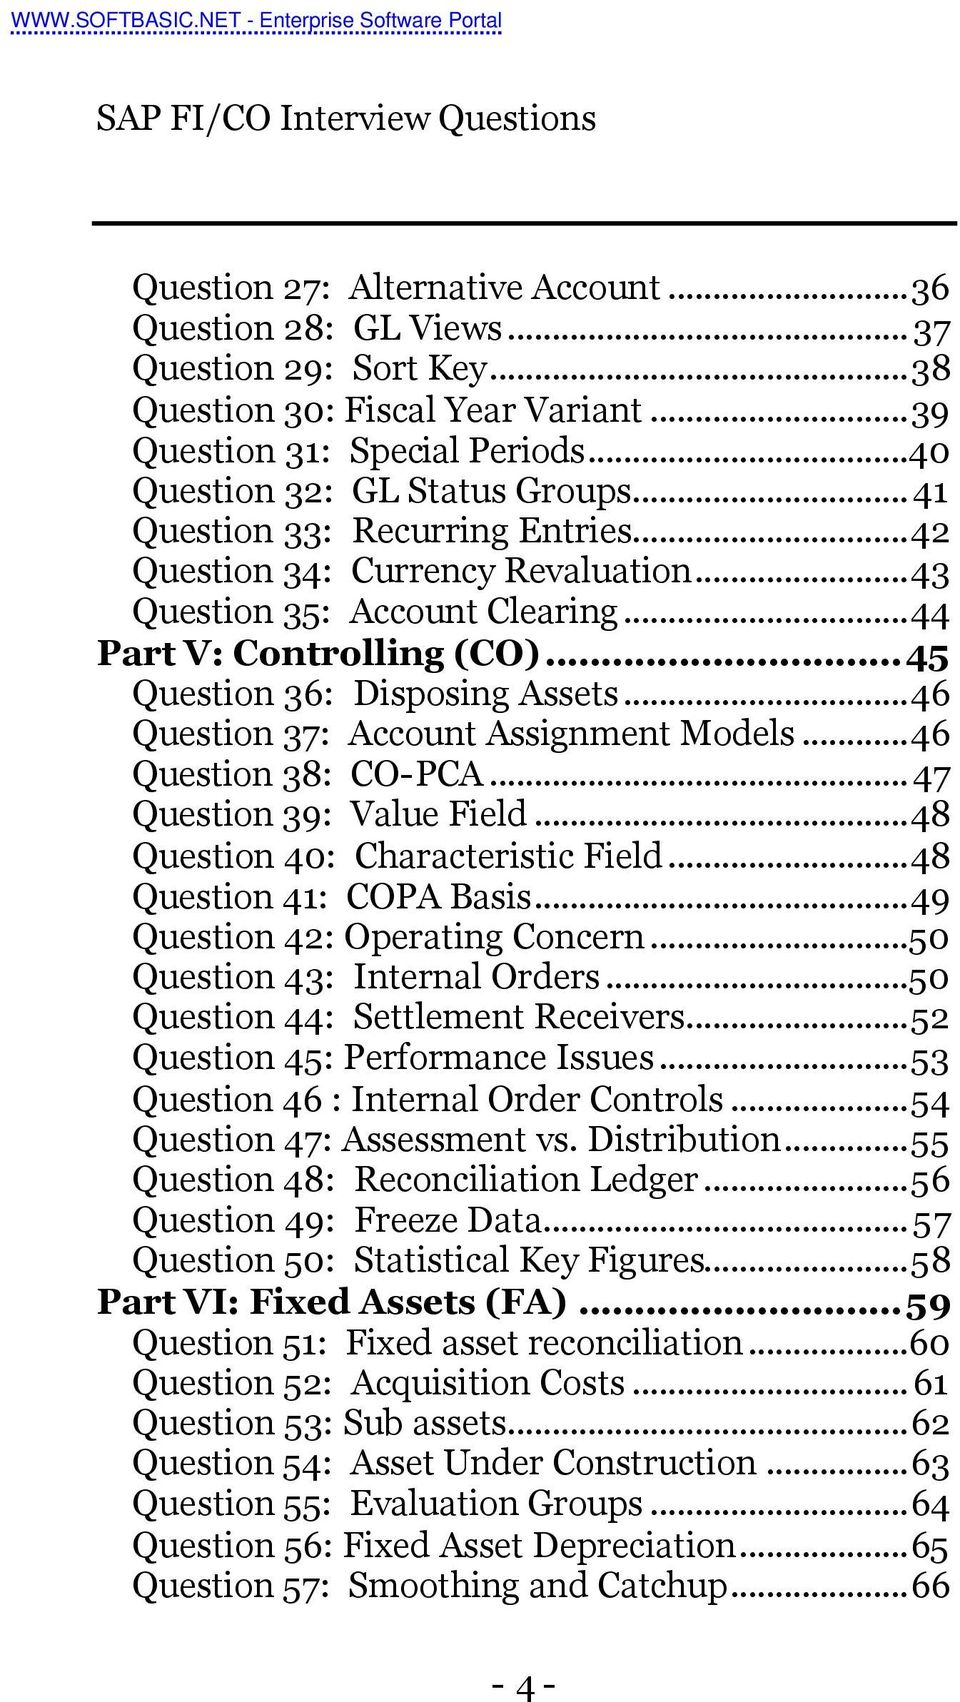 ..46 Question 37: Account Assignment Models...46 Question 38: CO-PCA...47 Question 39: Value Field...48 Question 40: Characteristic Field...48 Question 41: COPA Basis.